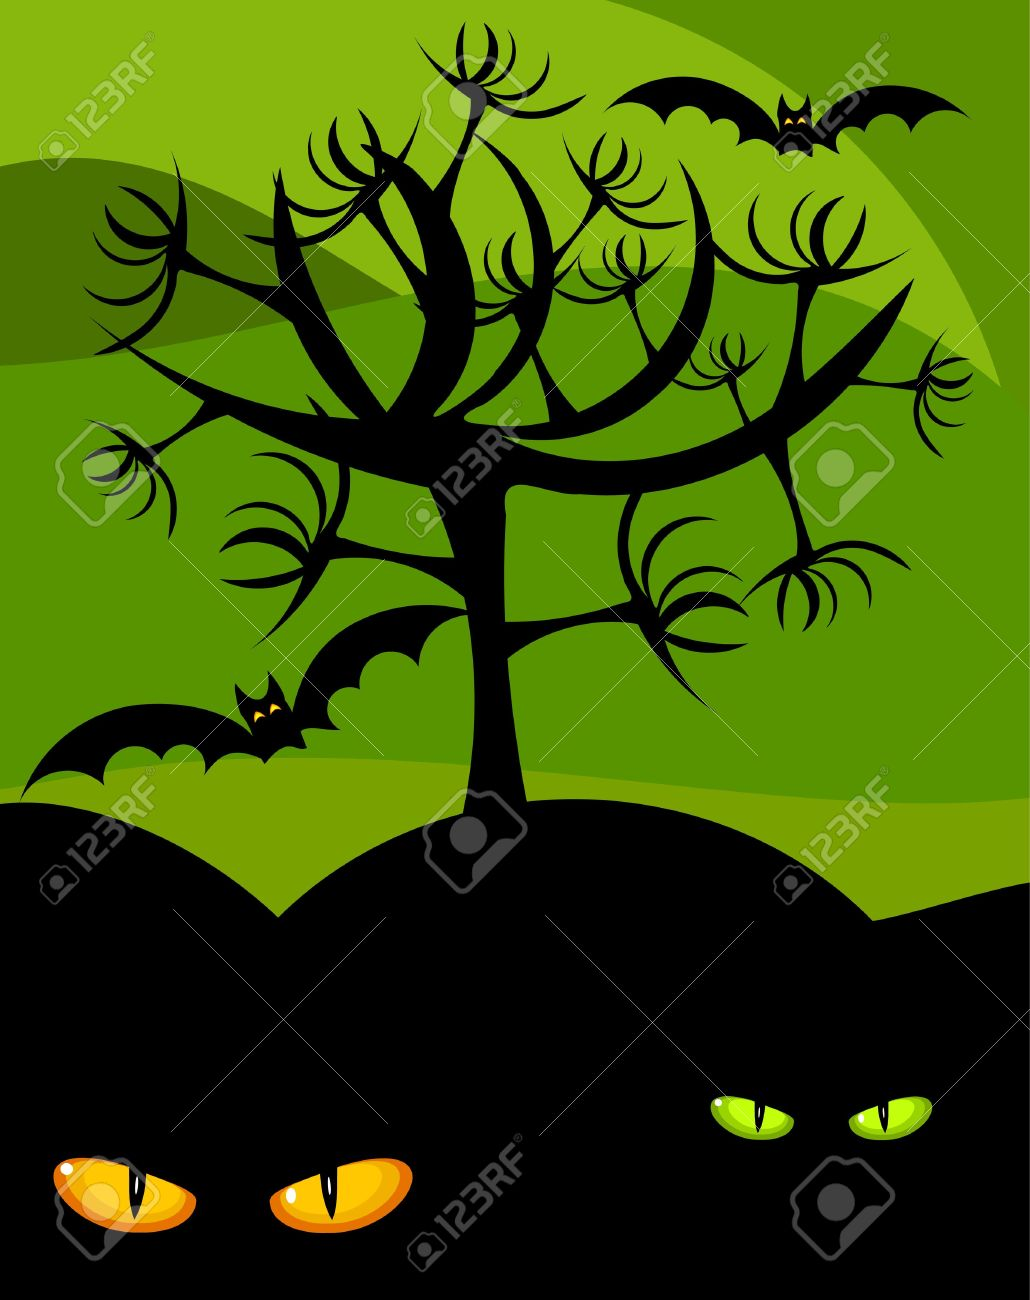 halloween scary scenery wild cat eyes tree and bats royalty free rh 123rf com Scary Pumpkin Clip Art Cute Ghost Clip Art